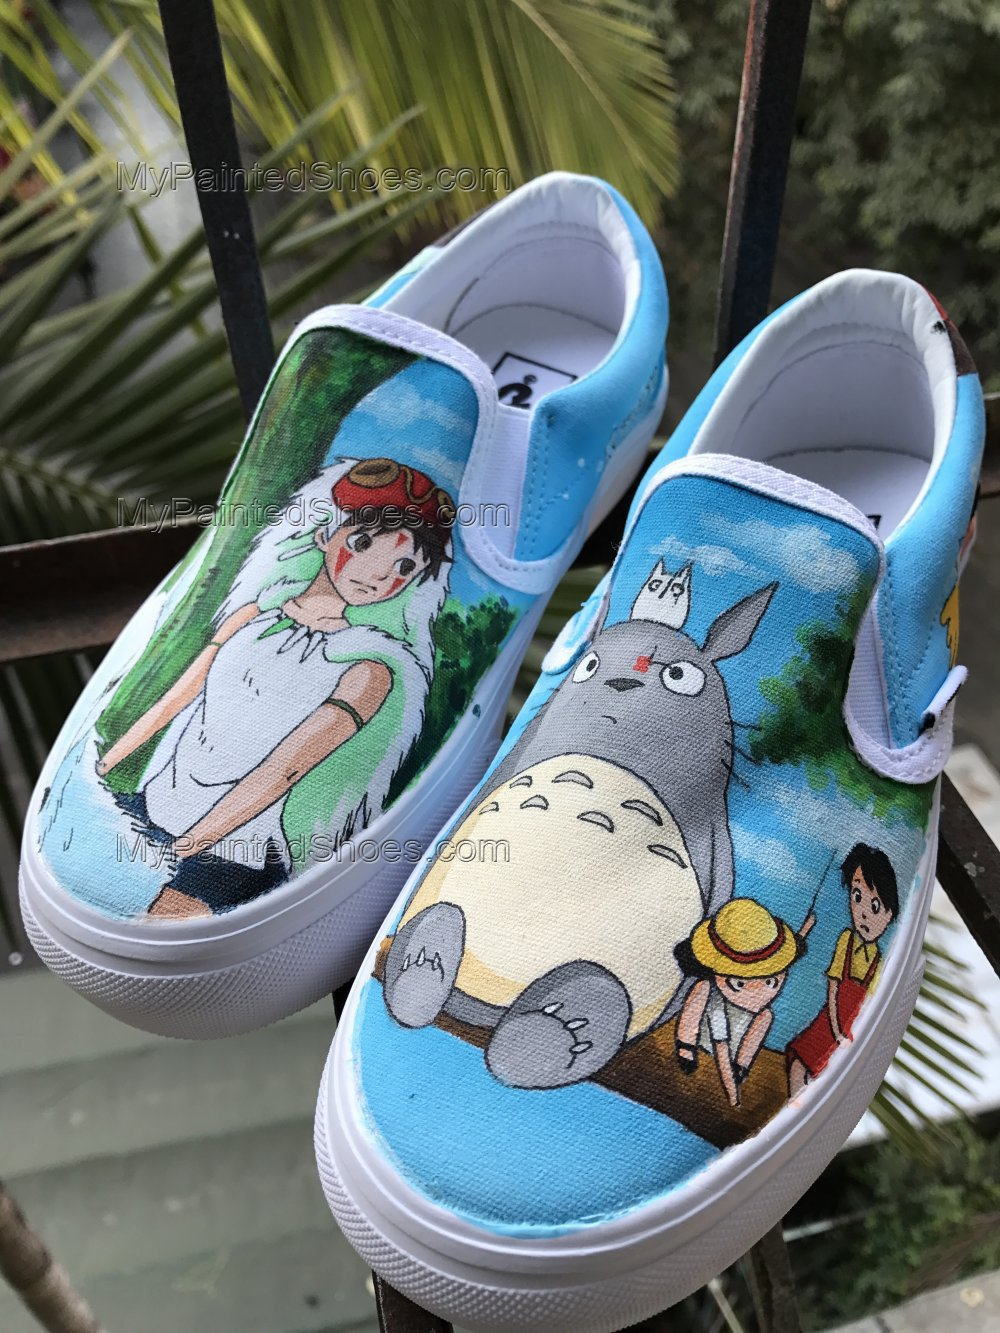 Spirited Away Custom Vans My Neighbor Totoro Vans Slipon Custom-1